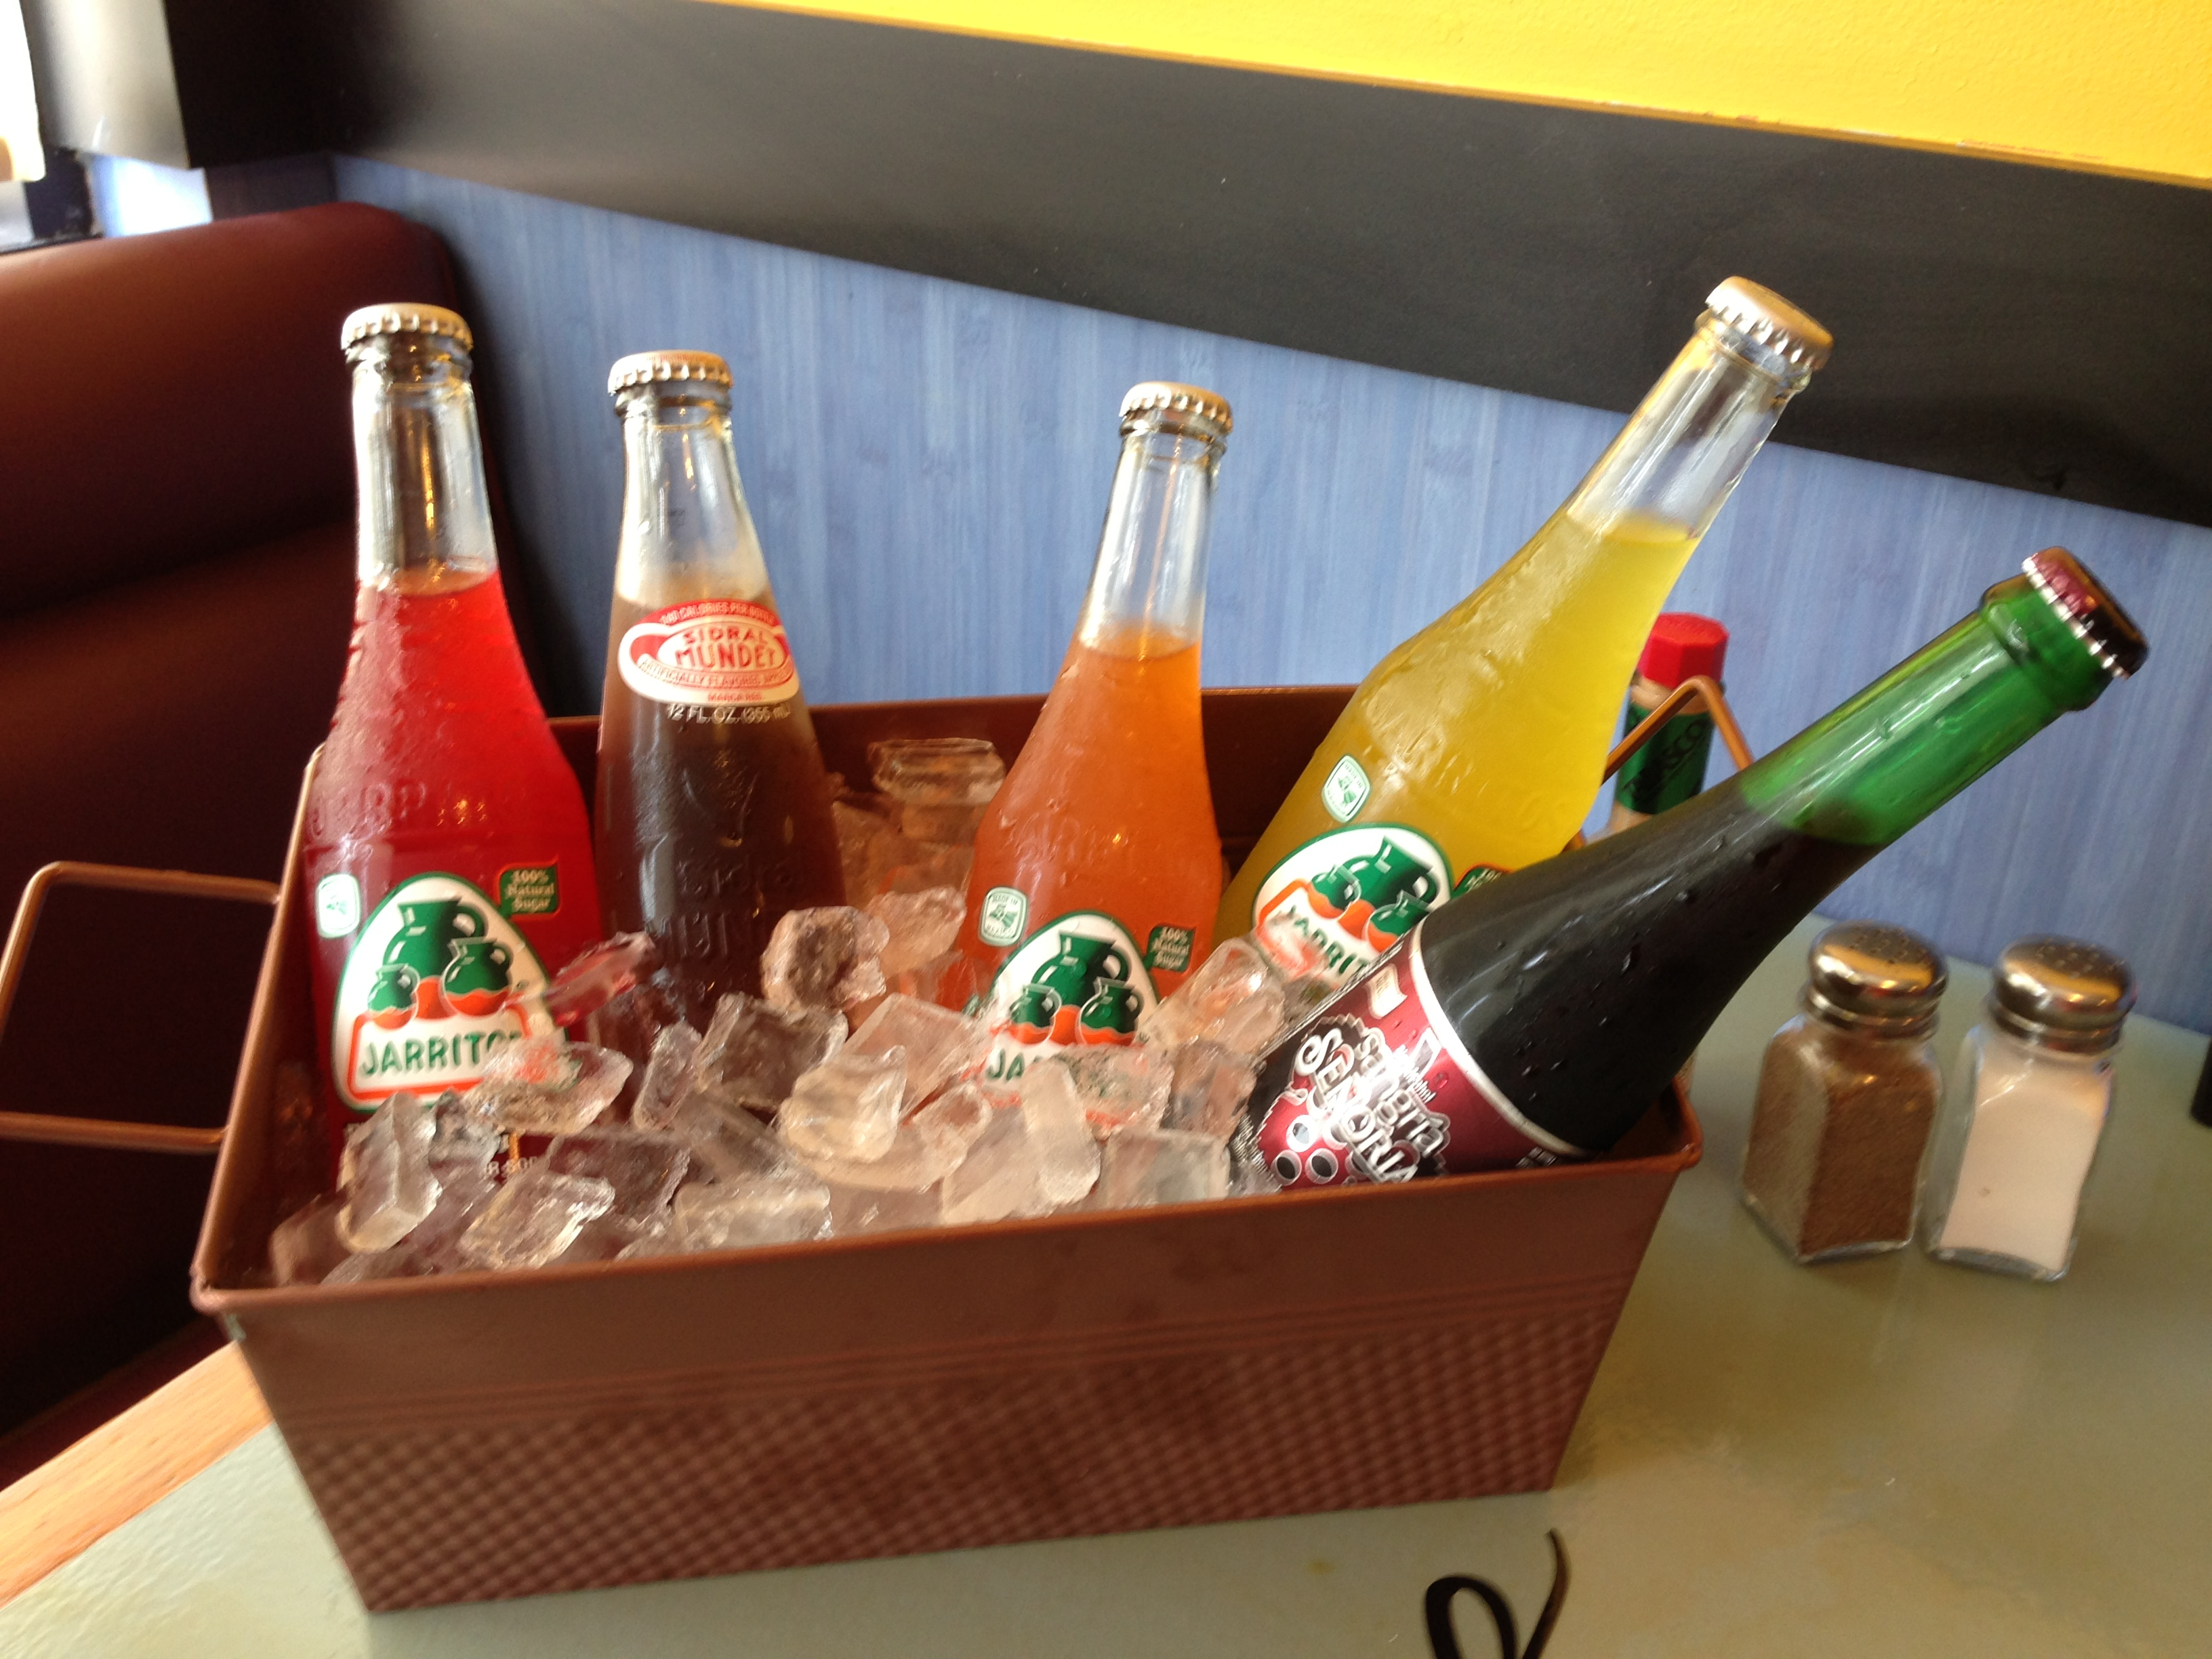 Special Jarritos Mexican Soft Drinks (5) Image